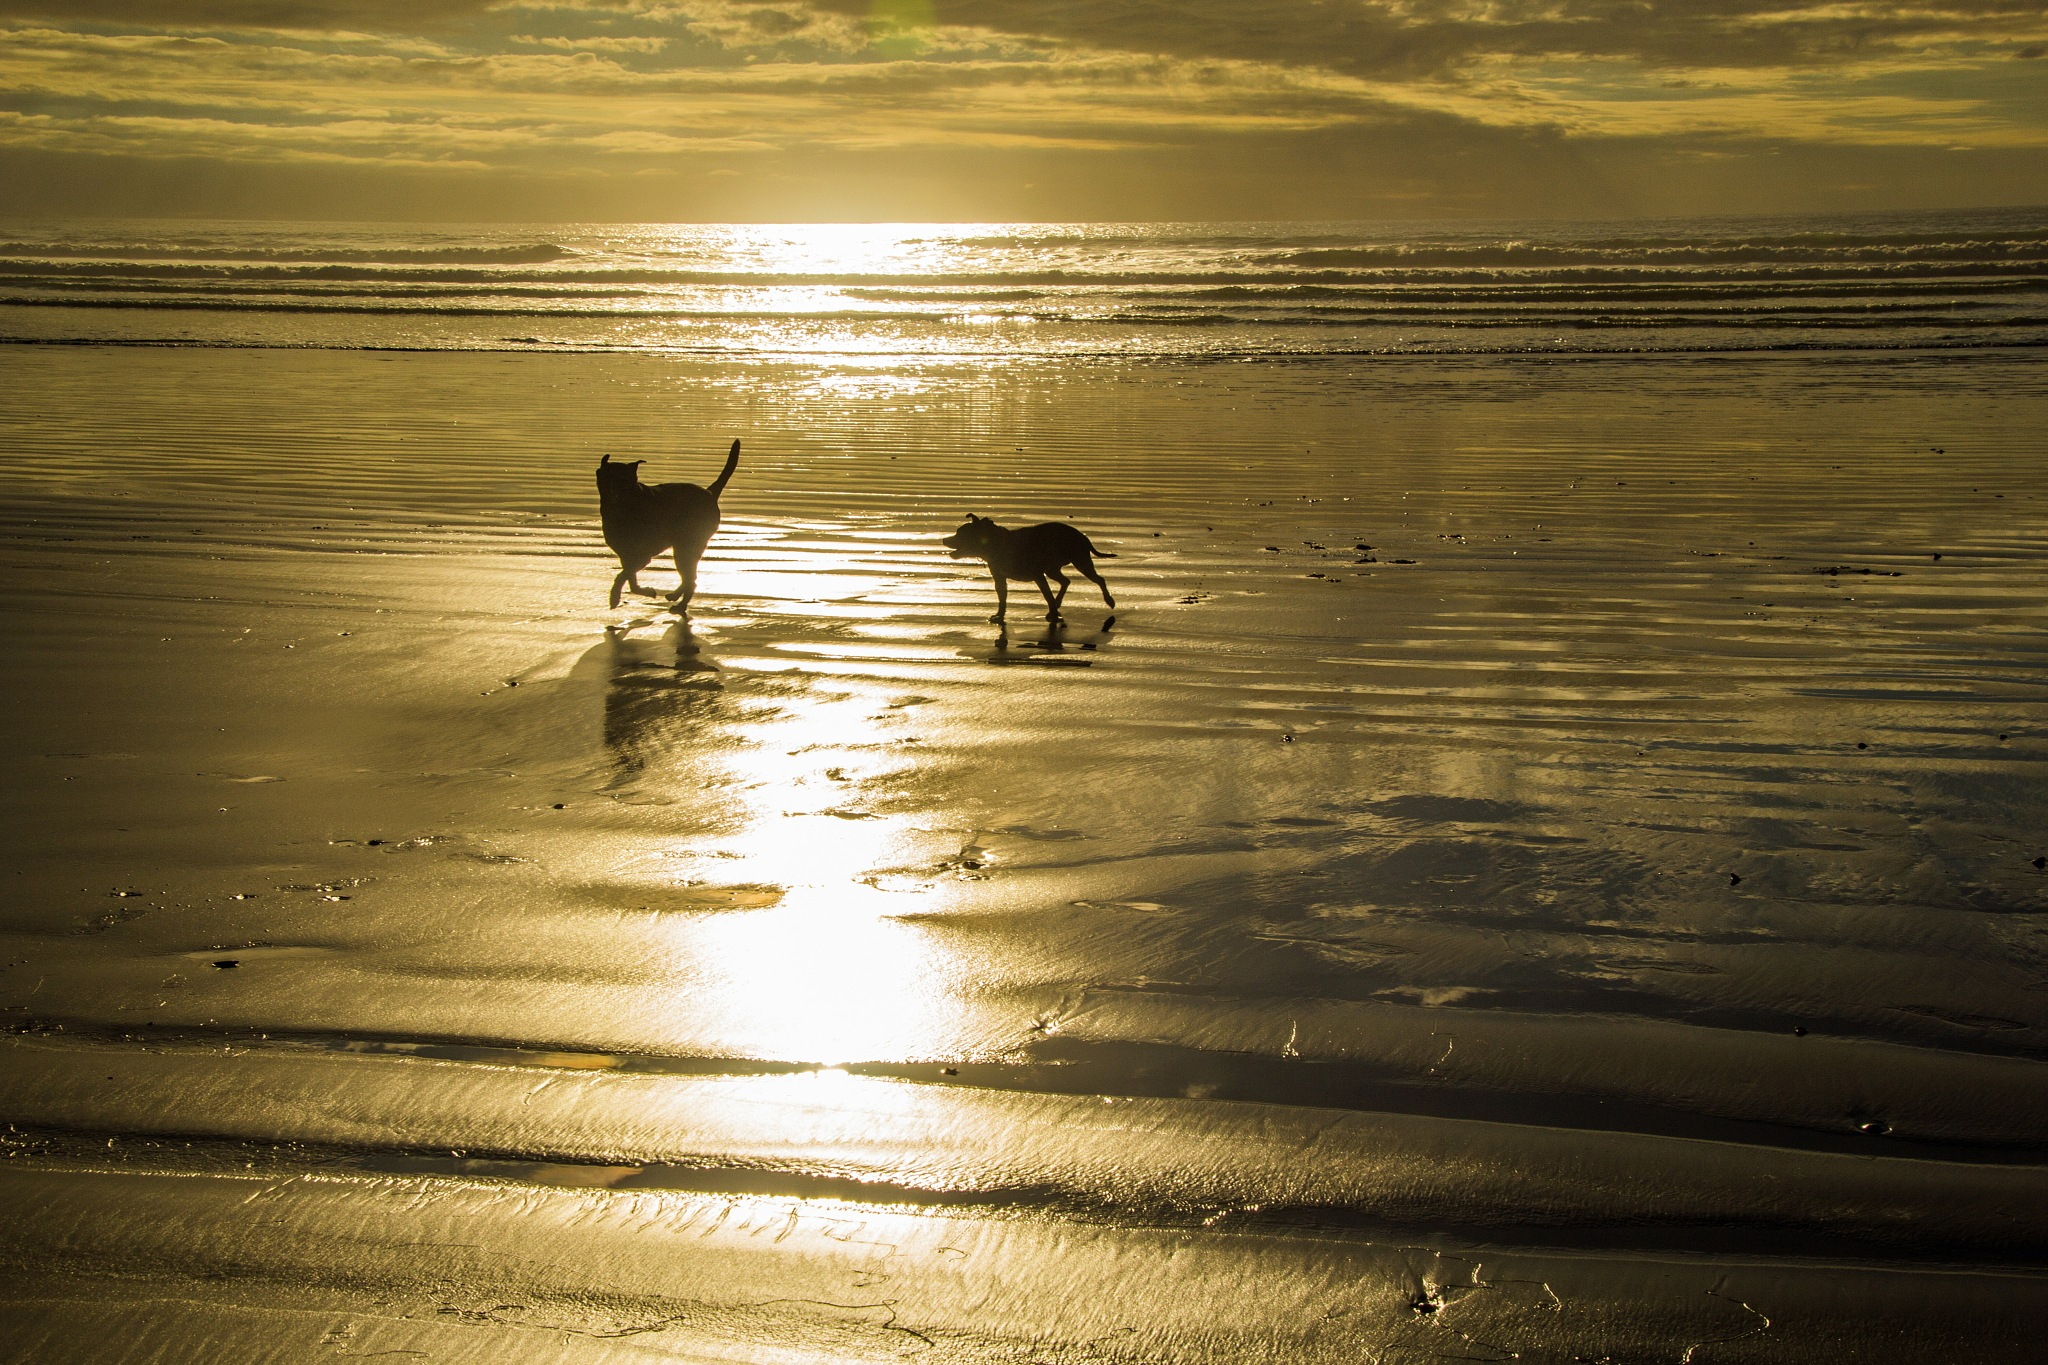 Playing on the beach by Nauta Piscatorque